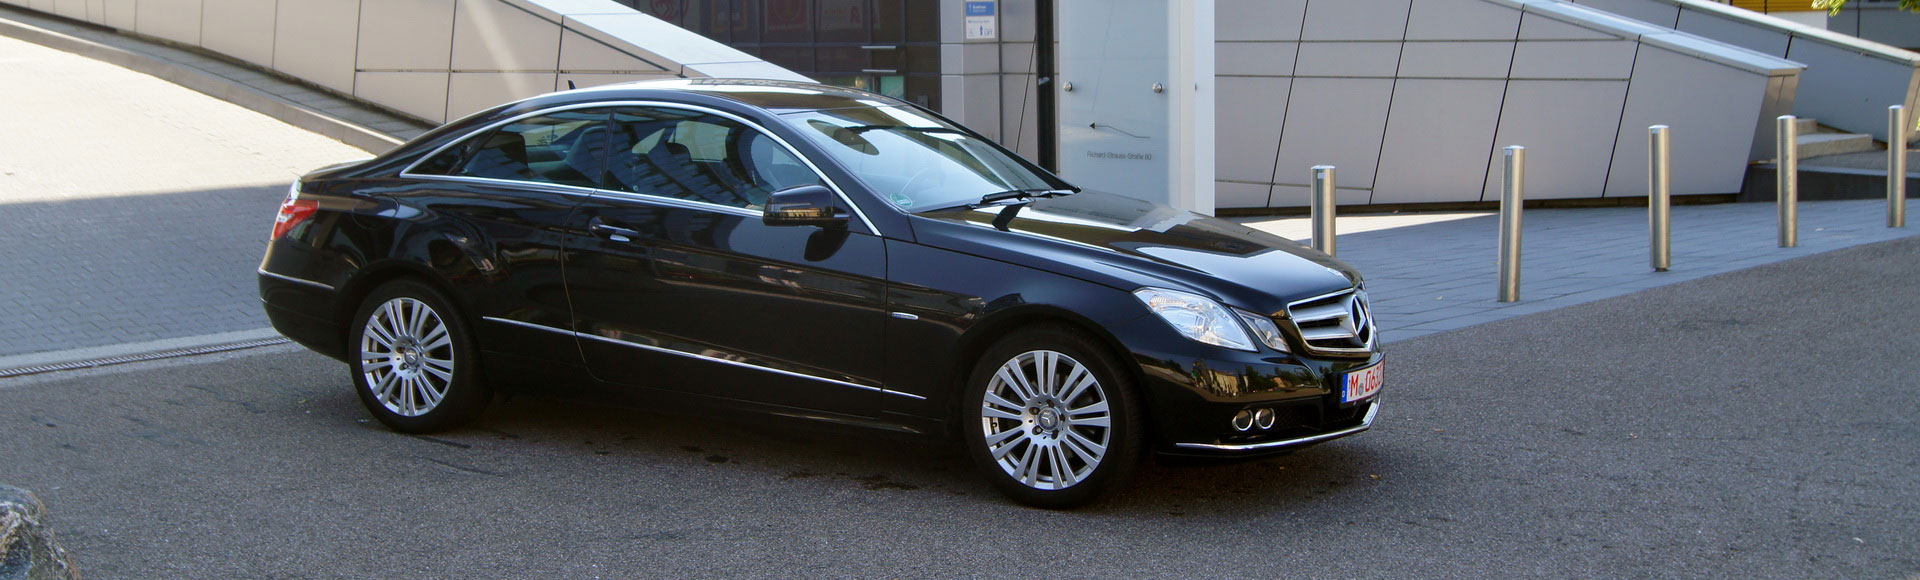 Mercedes Benz E200 Coupe 2010 Sommer 8396